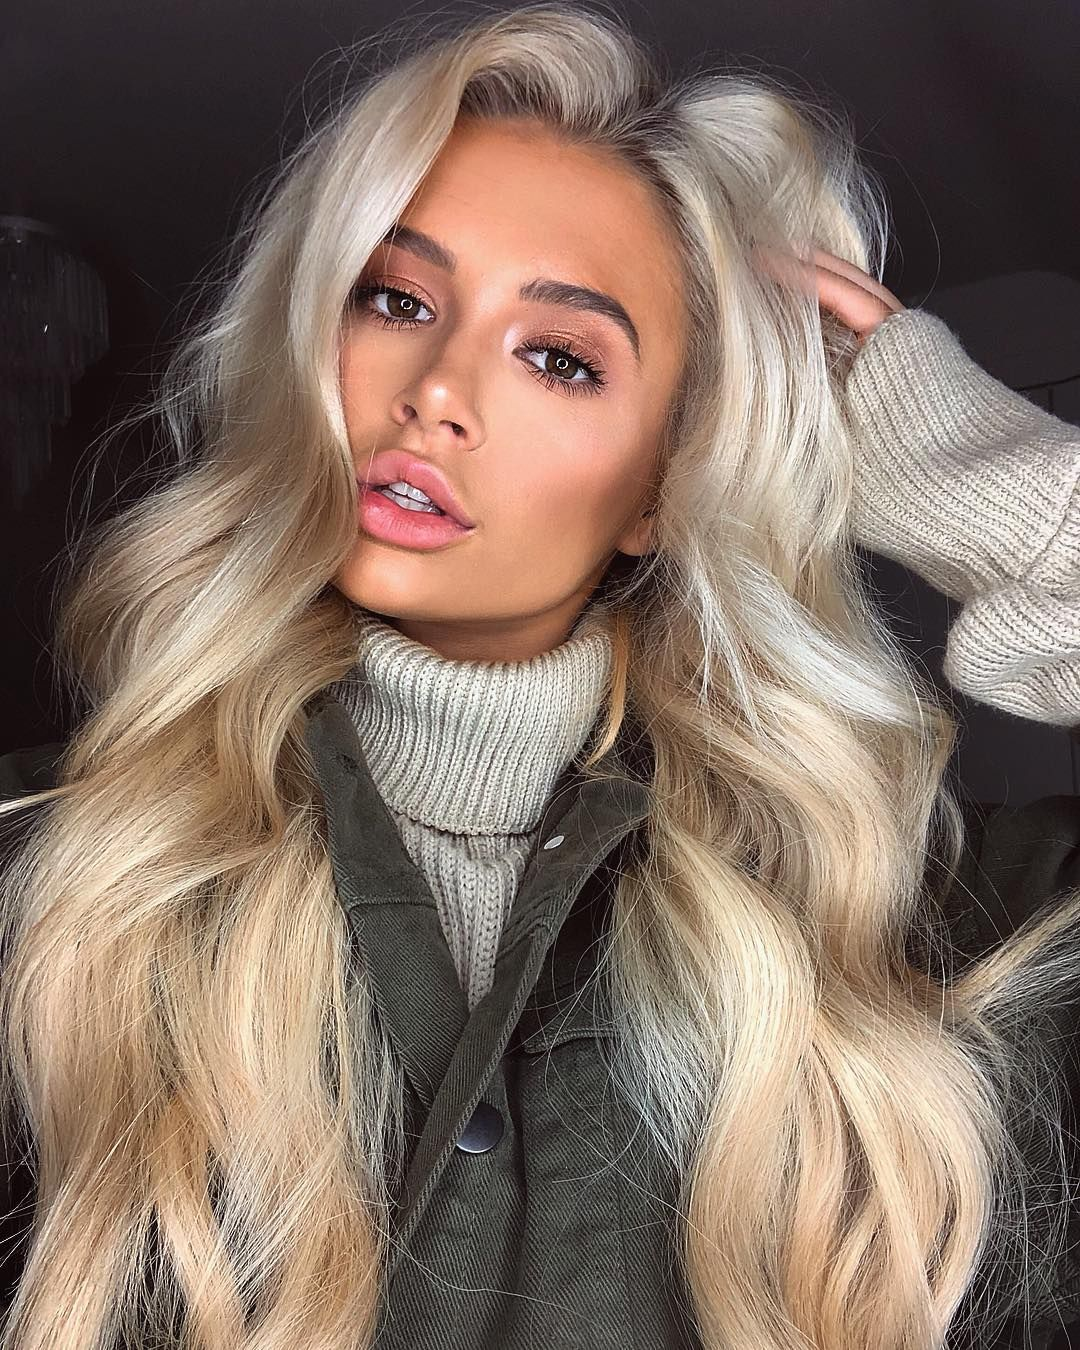 Image may contain: Love Island rumours, Molly Mae Hague, Love Island, 2019, cast, contestant, Islanders, news, gossip, Hair, Face, Woman, Teen, Girl, Child, Female, Blonde, Kid, Jacket, Coat, Person, Human, Apparel, Clothing